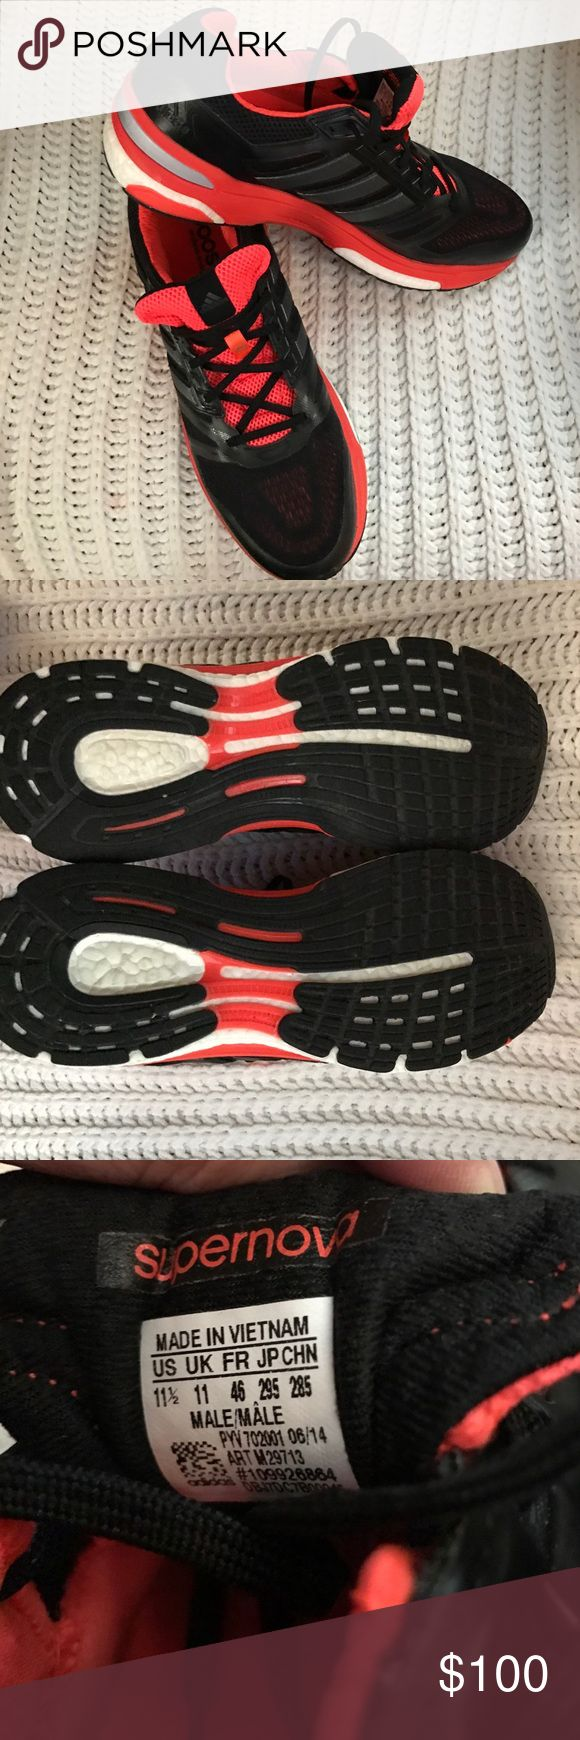 ADIDAS SUPERNOVA - SEQUENCE BOOST - MENS RS 11.5 ADIDAS - SUPERNOVA-- SEQUENCE BOOST!!!  RUNNING SHOE!!!  --- ONE TIME USED!!!  Little yellowing on white areas...STILL LOOKS NEW!!!  GREAT CONDITION!!!  ❤️ Adidas Shoes Athletic Shoes